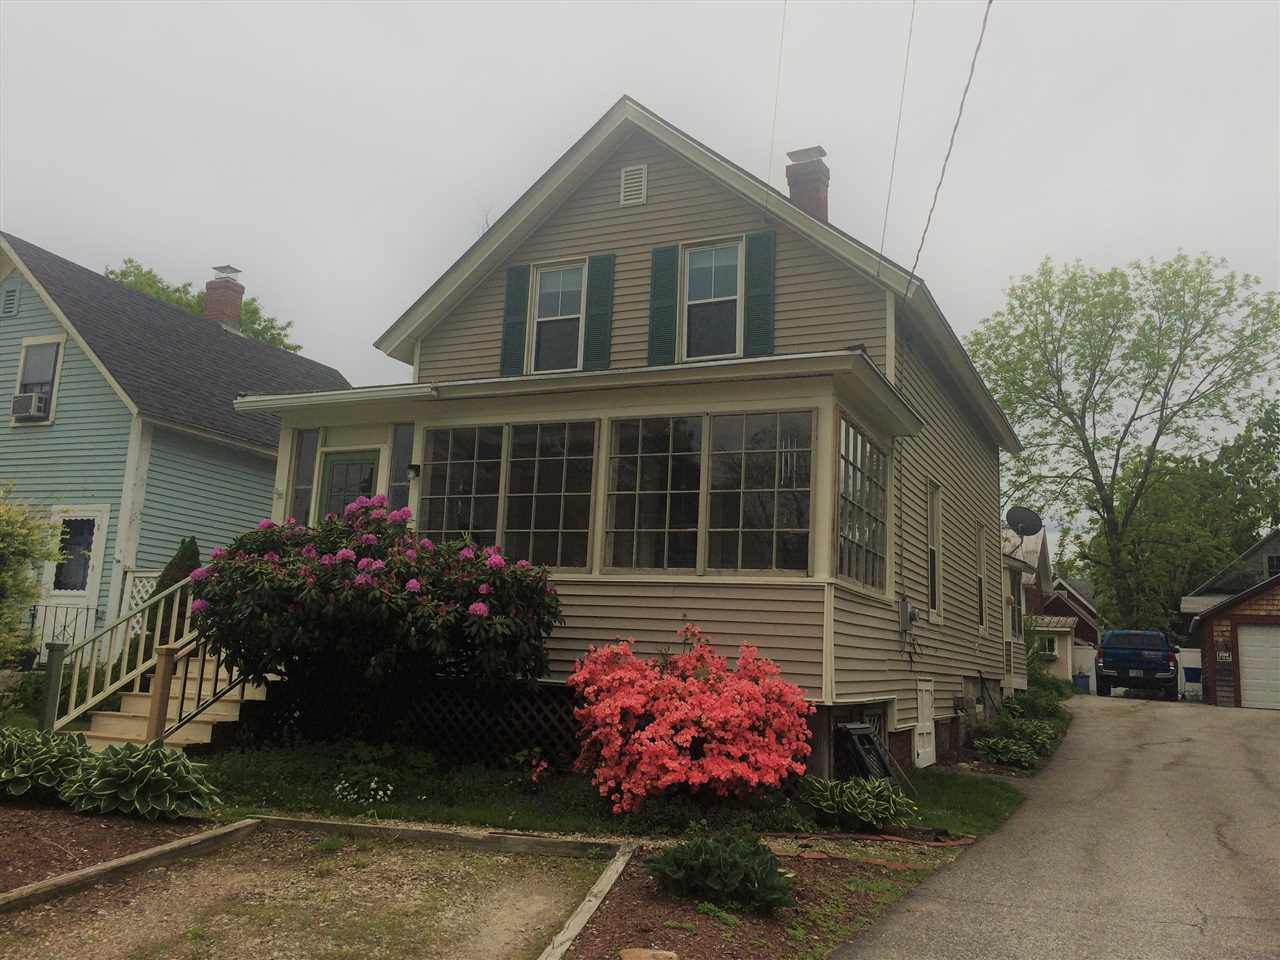 Photo of 34 Spruce Street Concord NH 03301